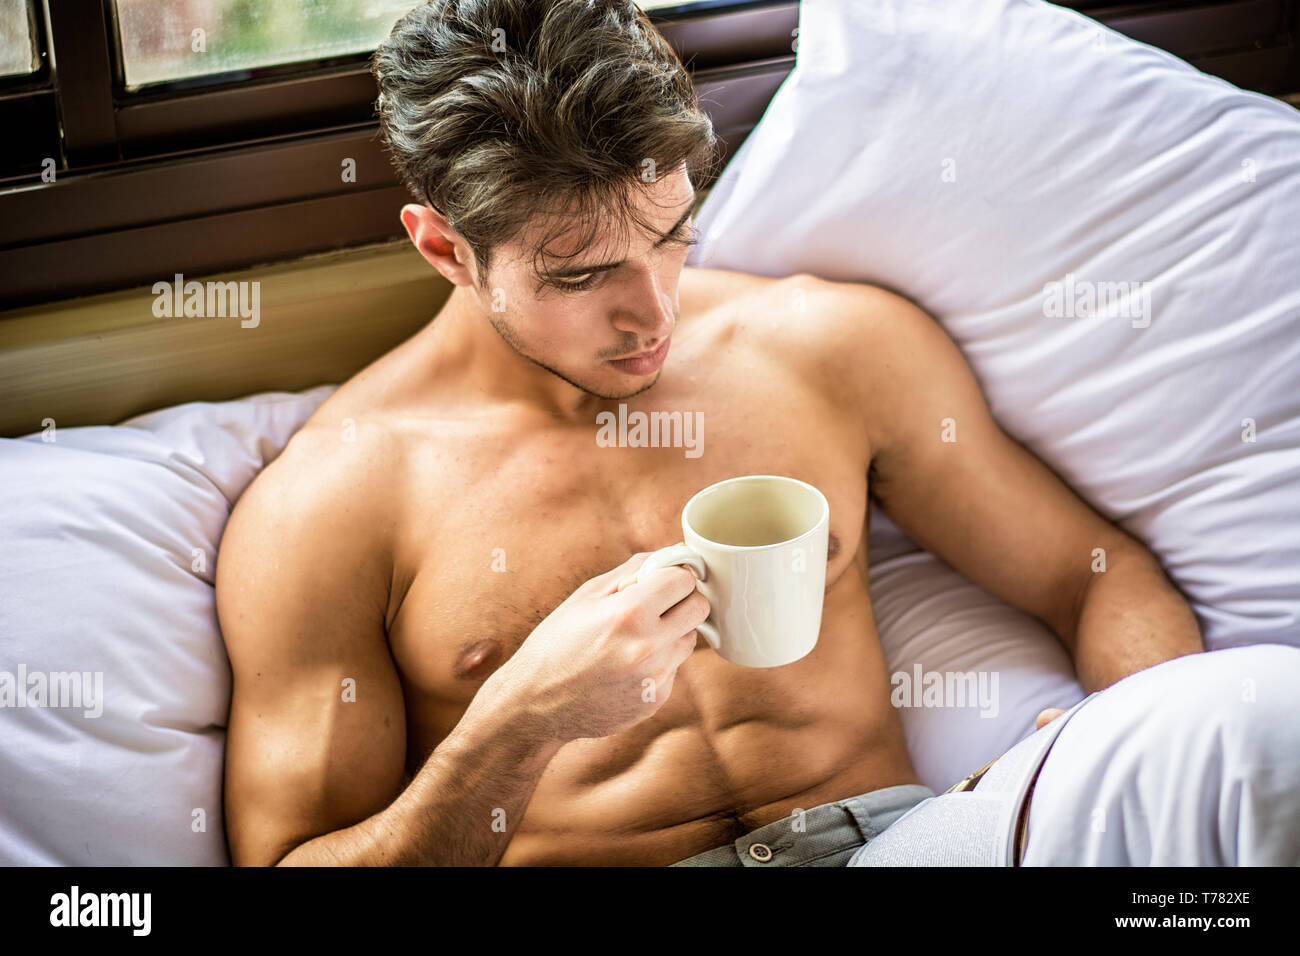 Sexy handsome young man laying shirtless on his bed next to window, holding a coffee or tea cup while reading a book Stock Photo